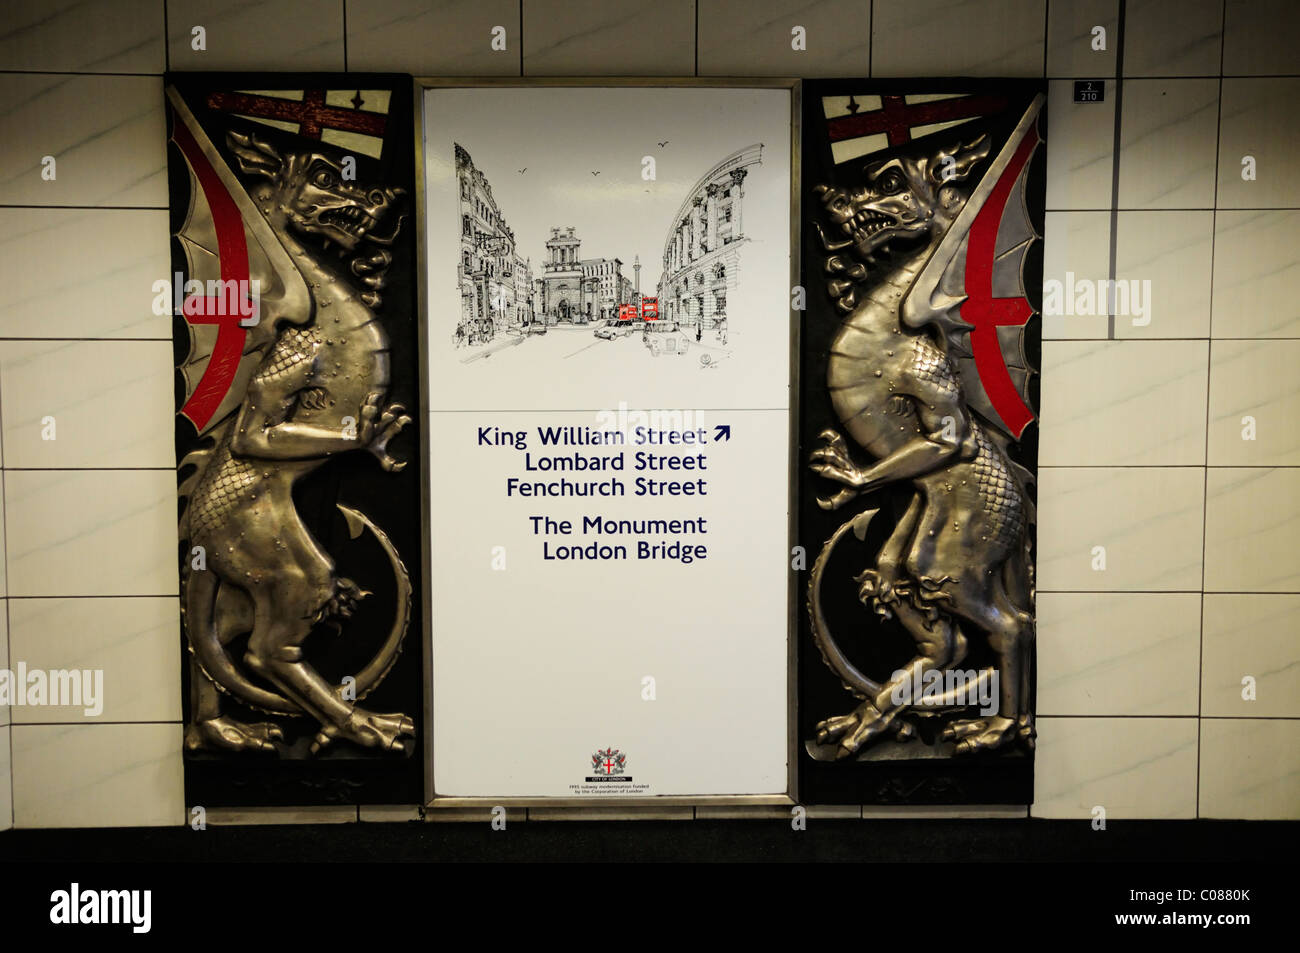 Exit from Bank Underground Tube Station Sign With City of London Dragon, London, England, UK - Stock Image